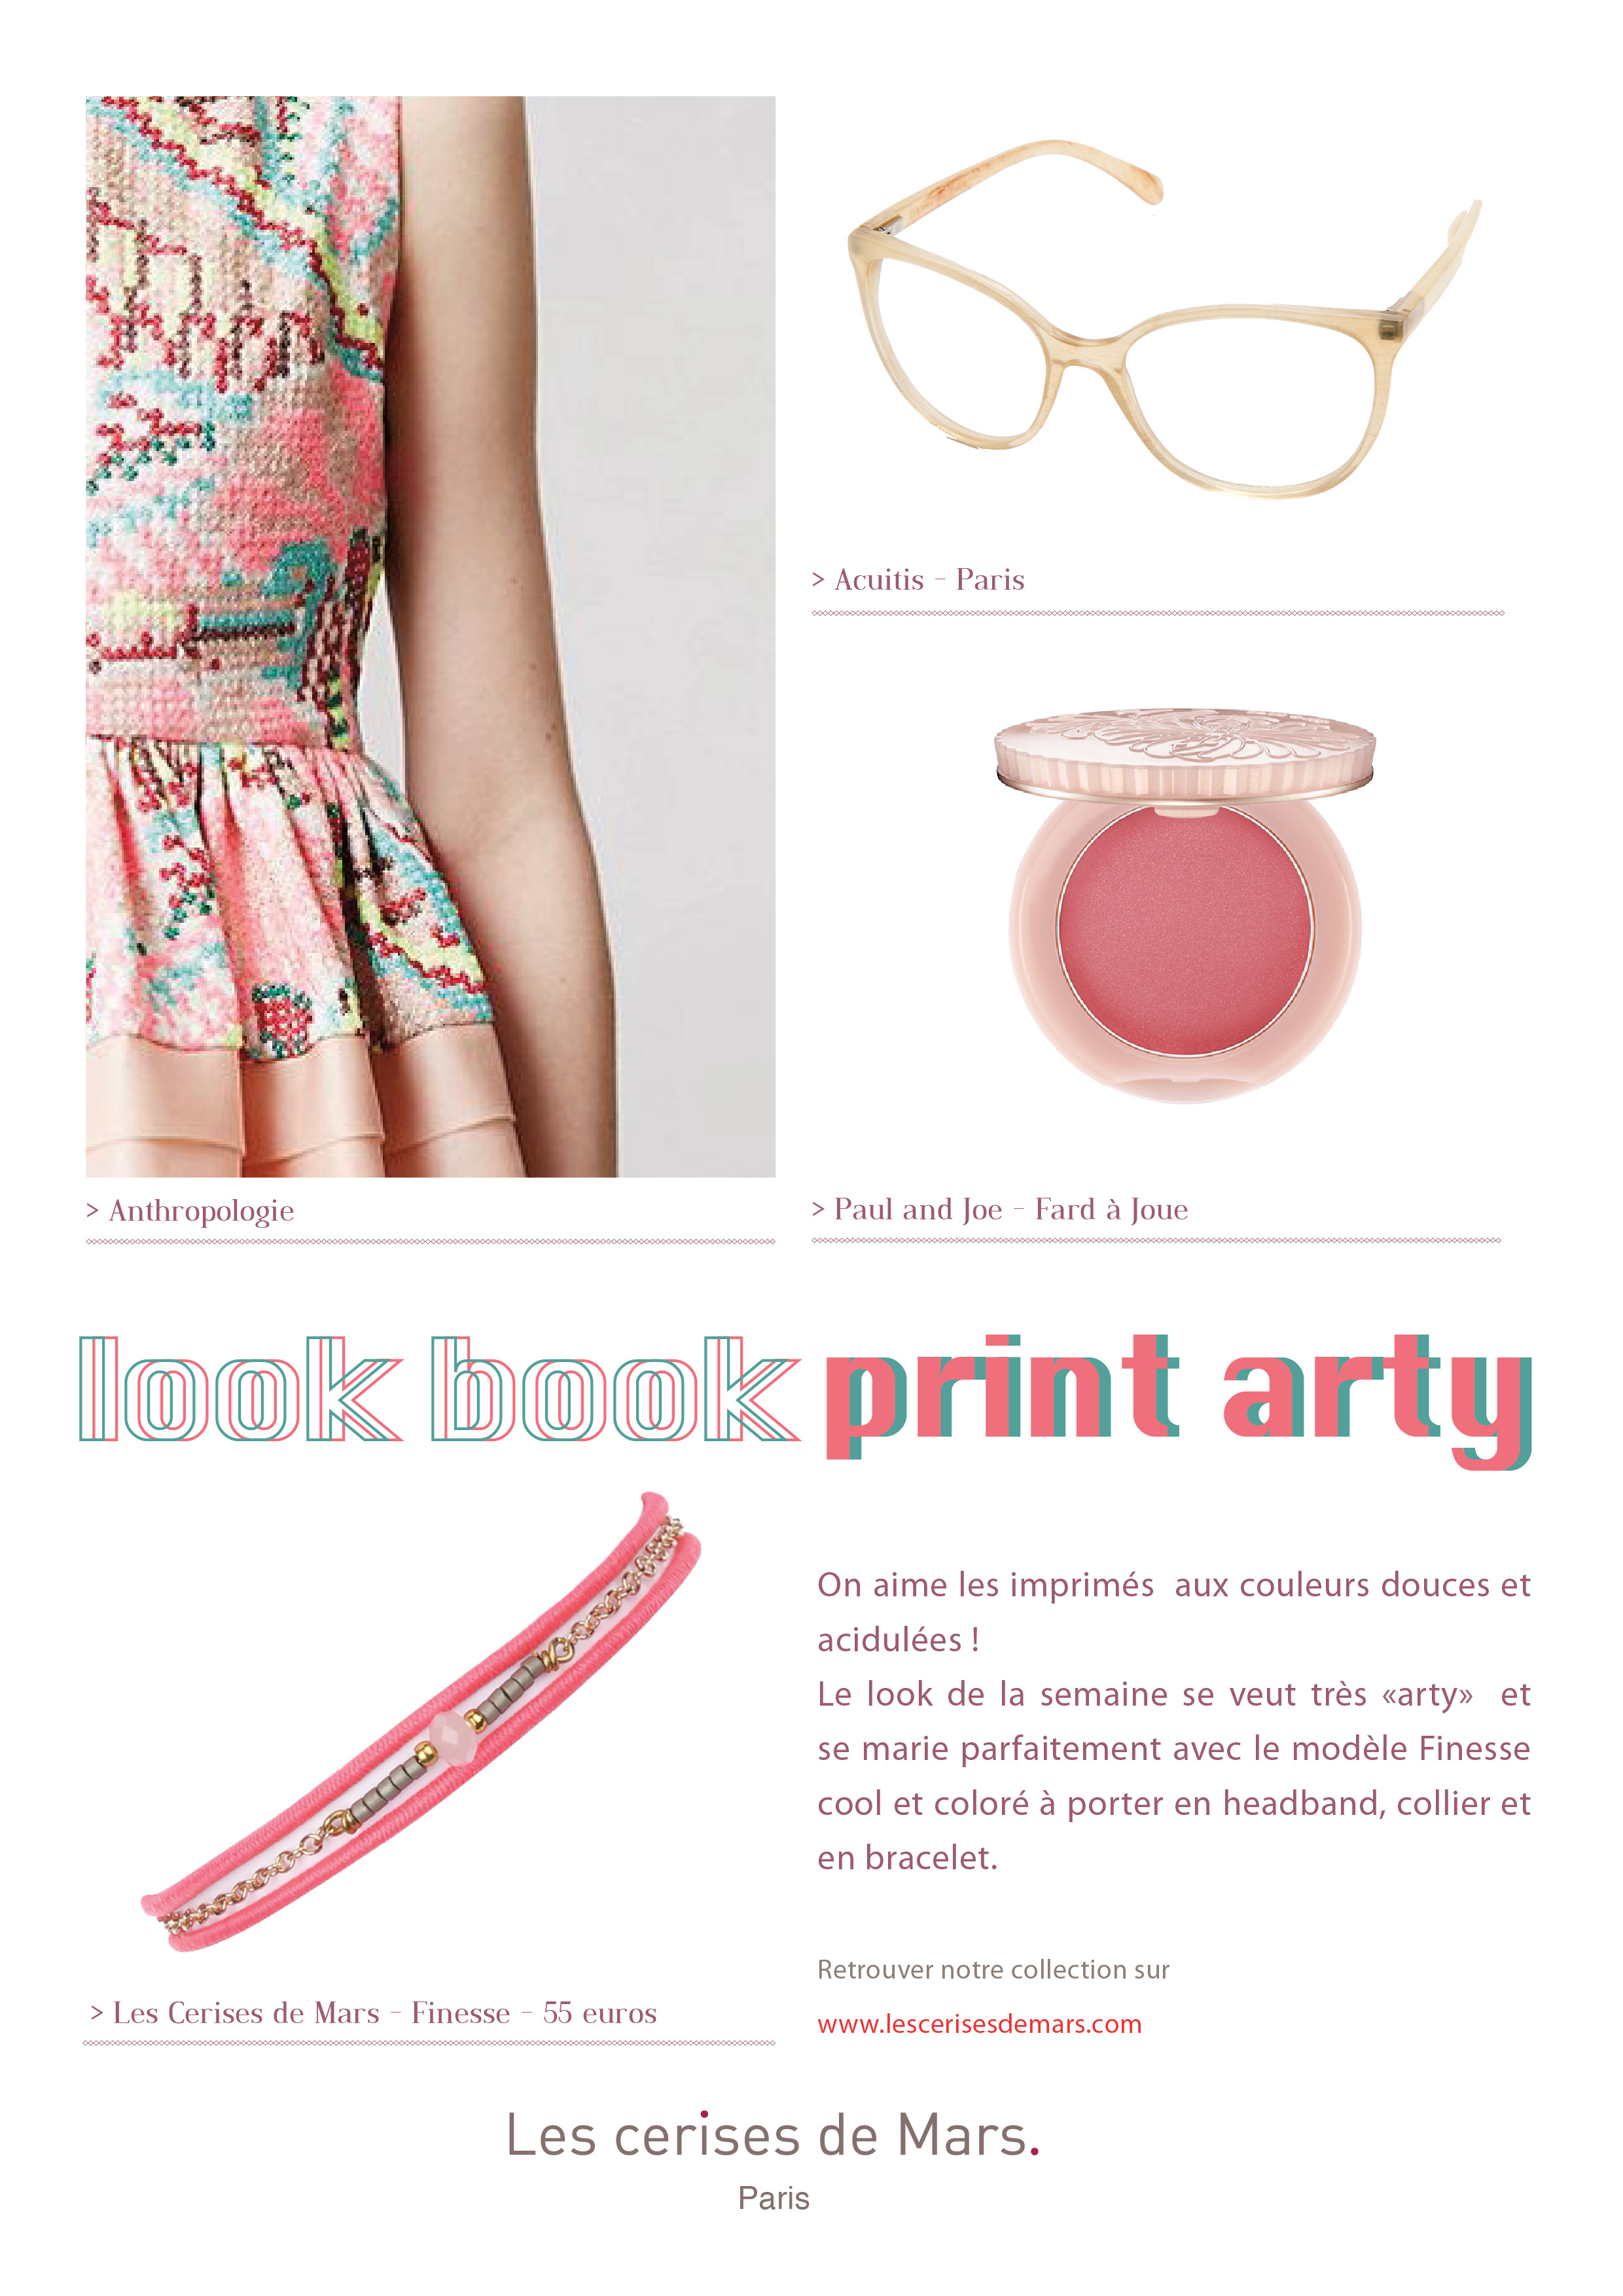 Lookbook Print Arty …